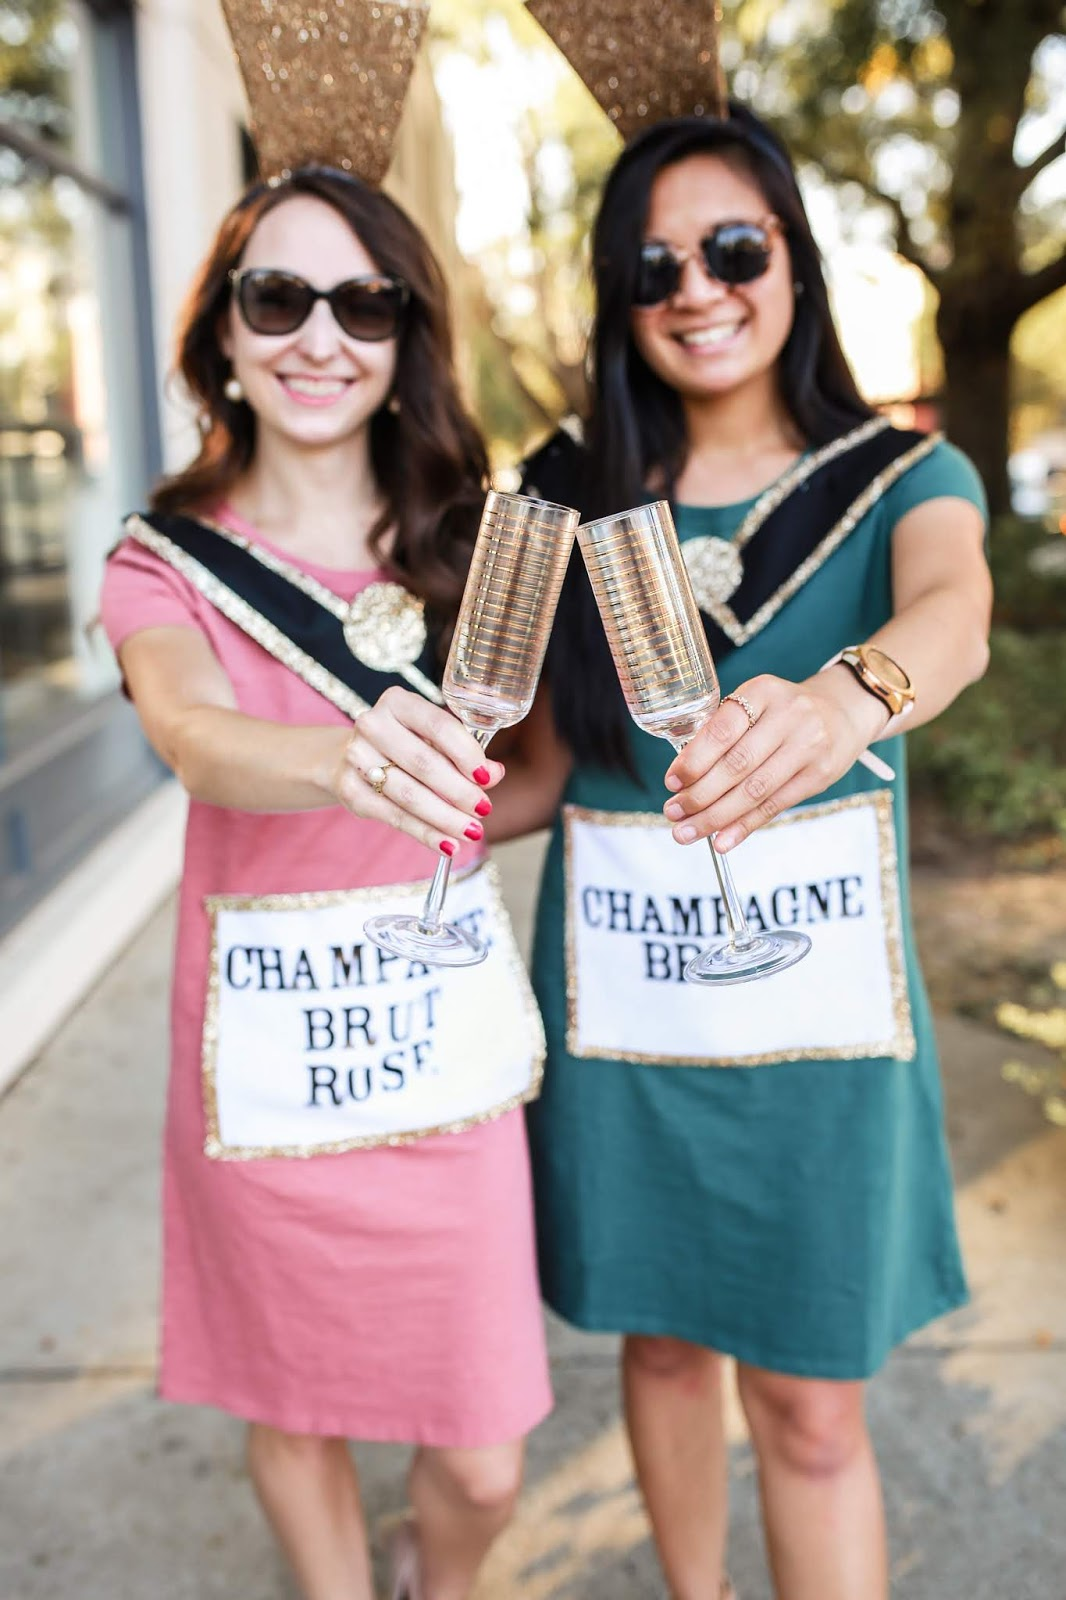 DIY Champagne bottle halloween costume